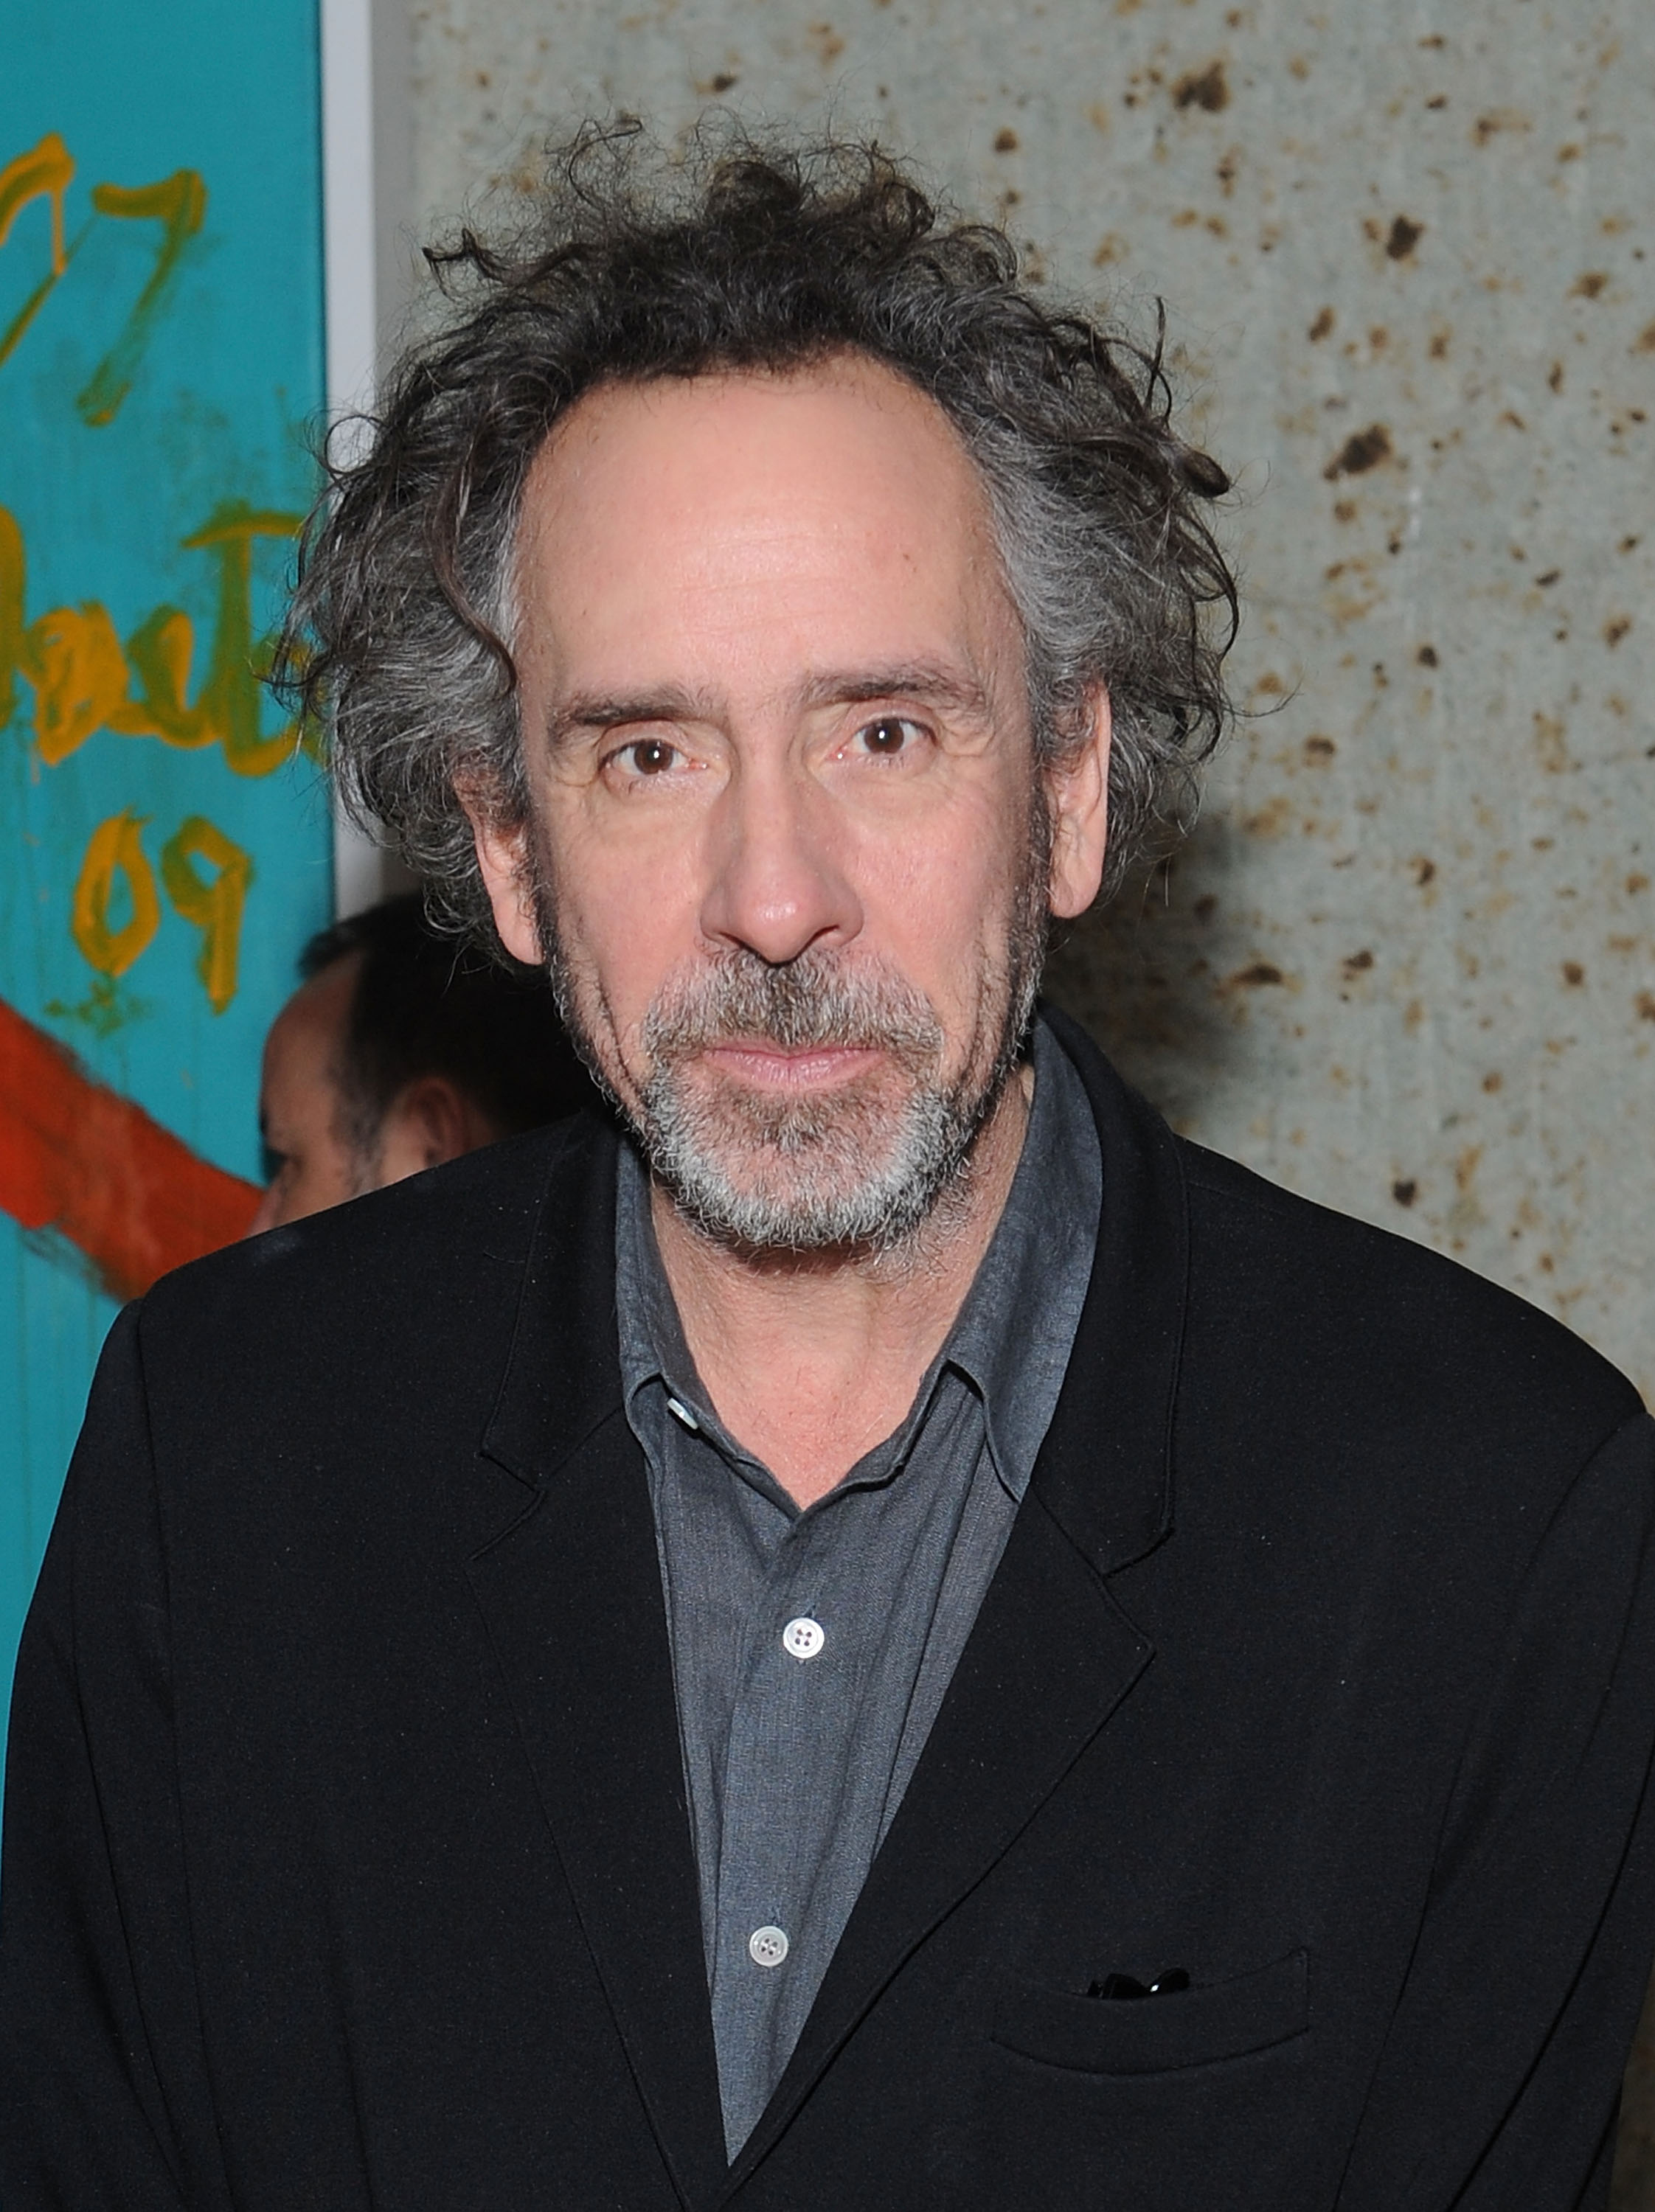 Tim Burton at the Museum of Modern Art on Dec. 15, 2014 in New York City.